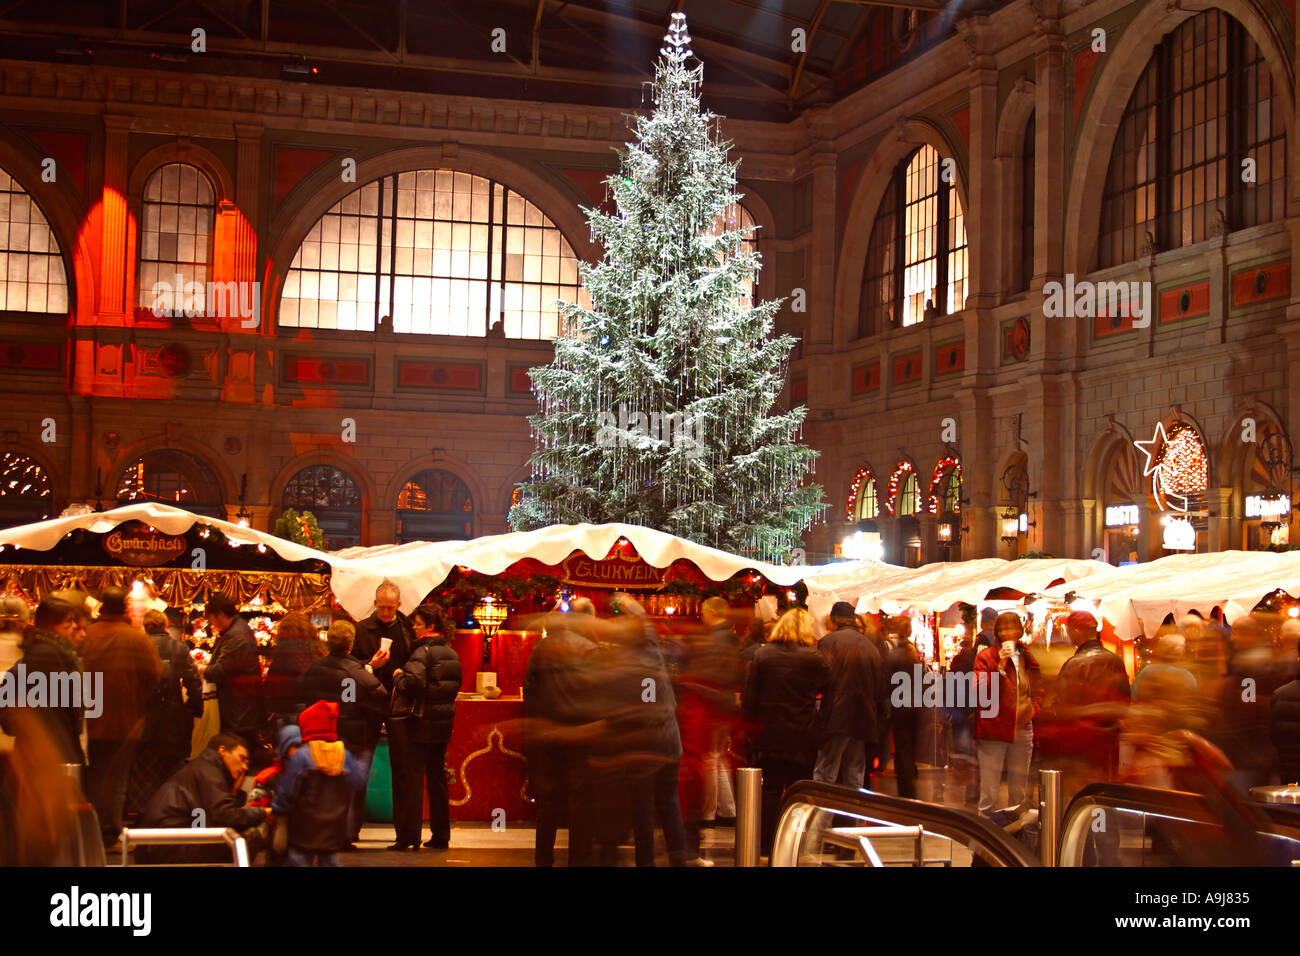 Switzerland Zurich main station indoor chirstmas market stalls - Stock Image